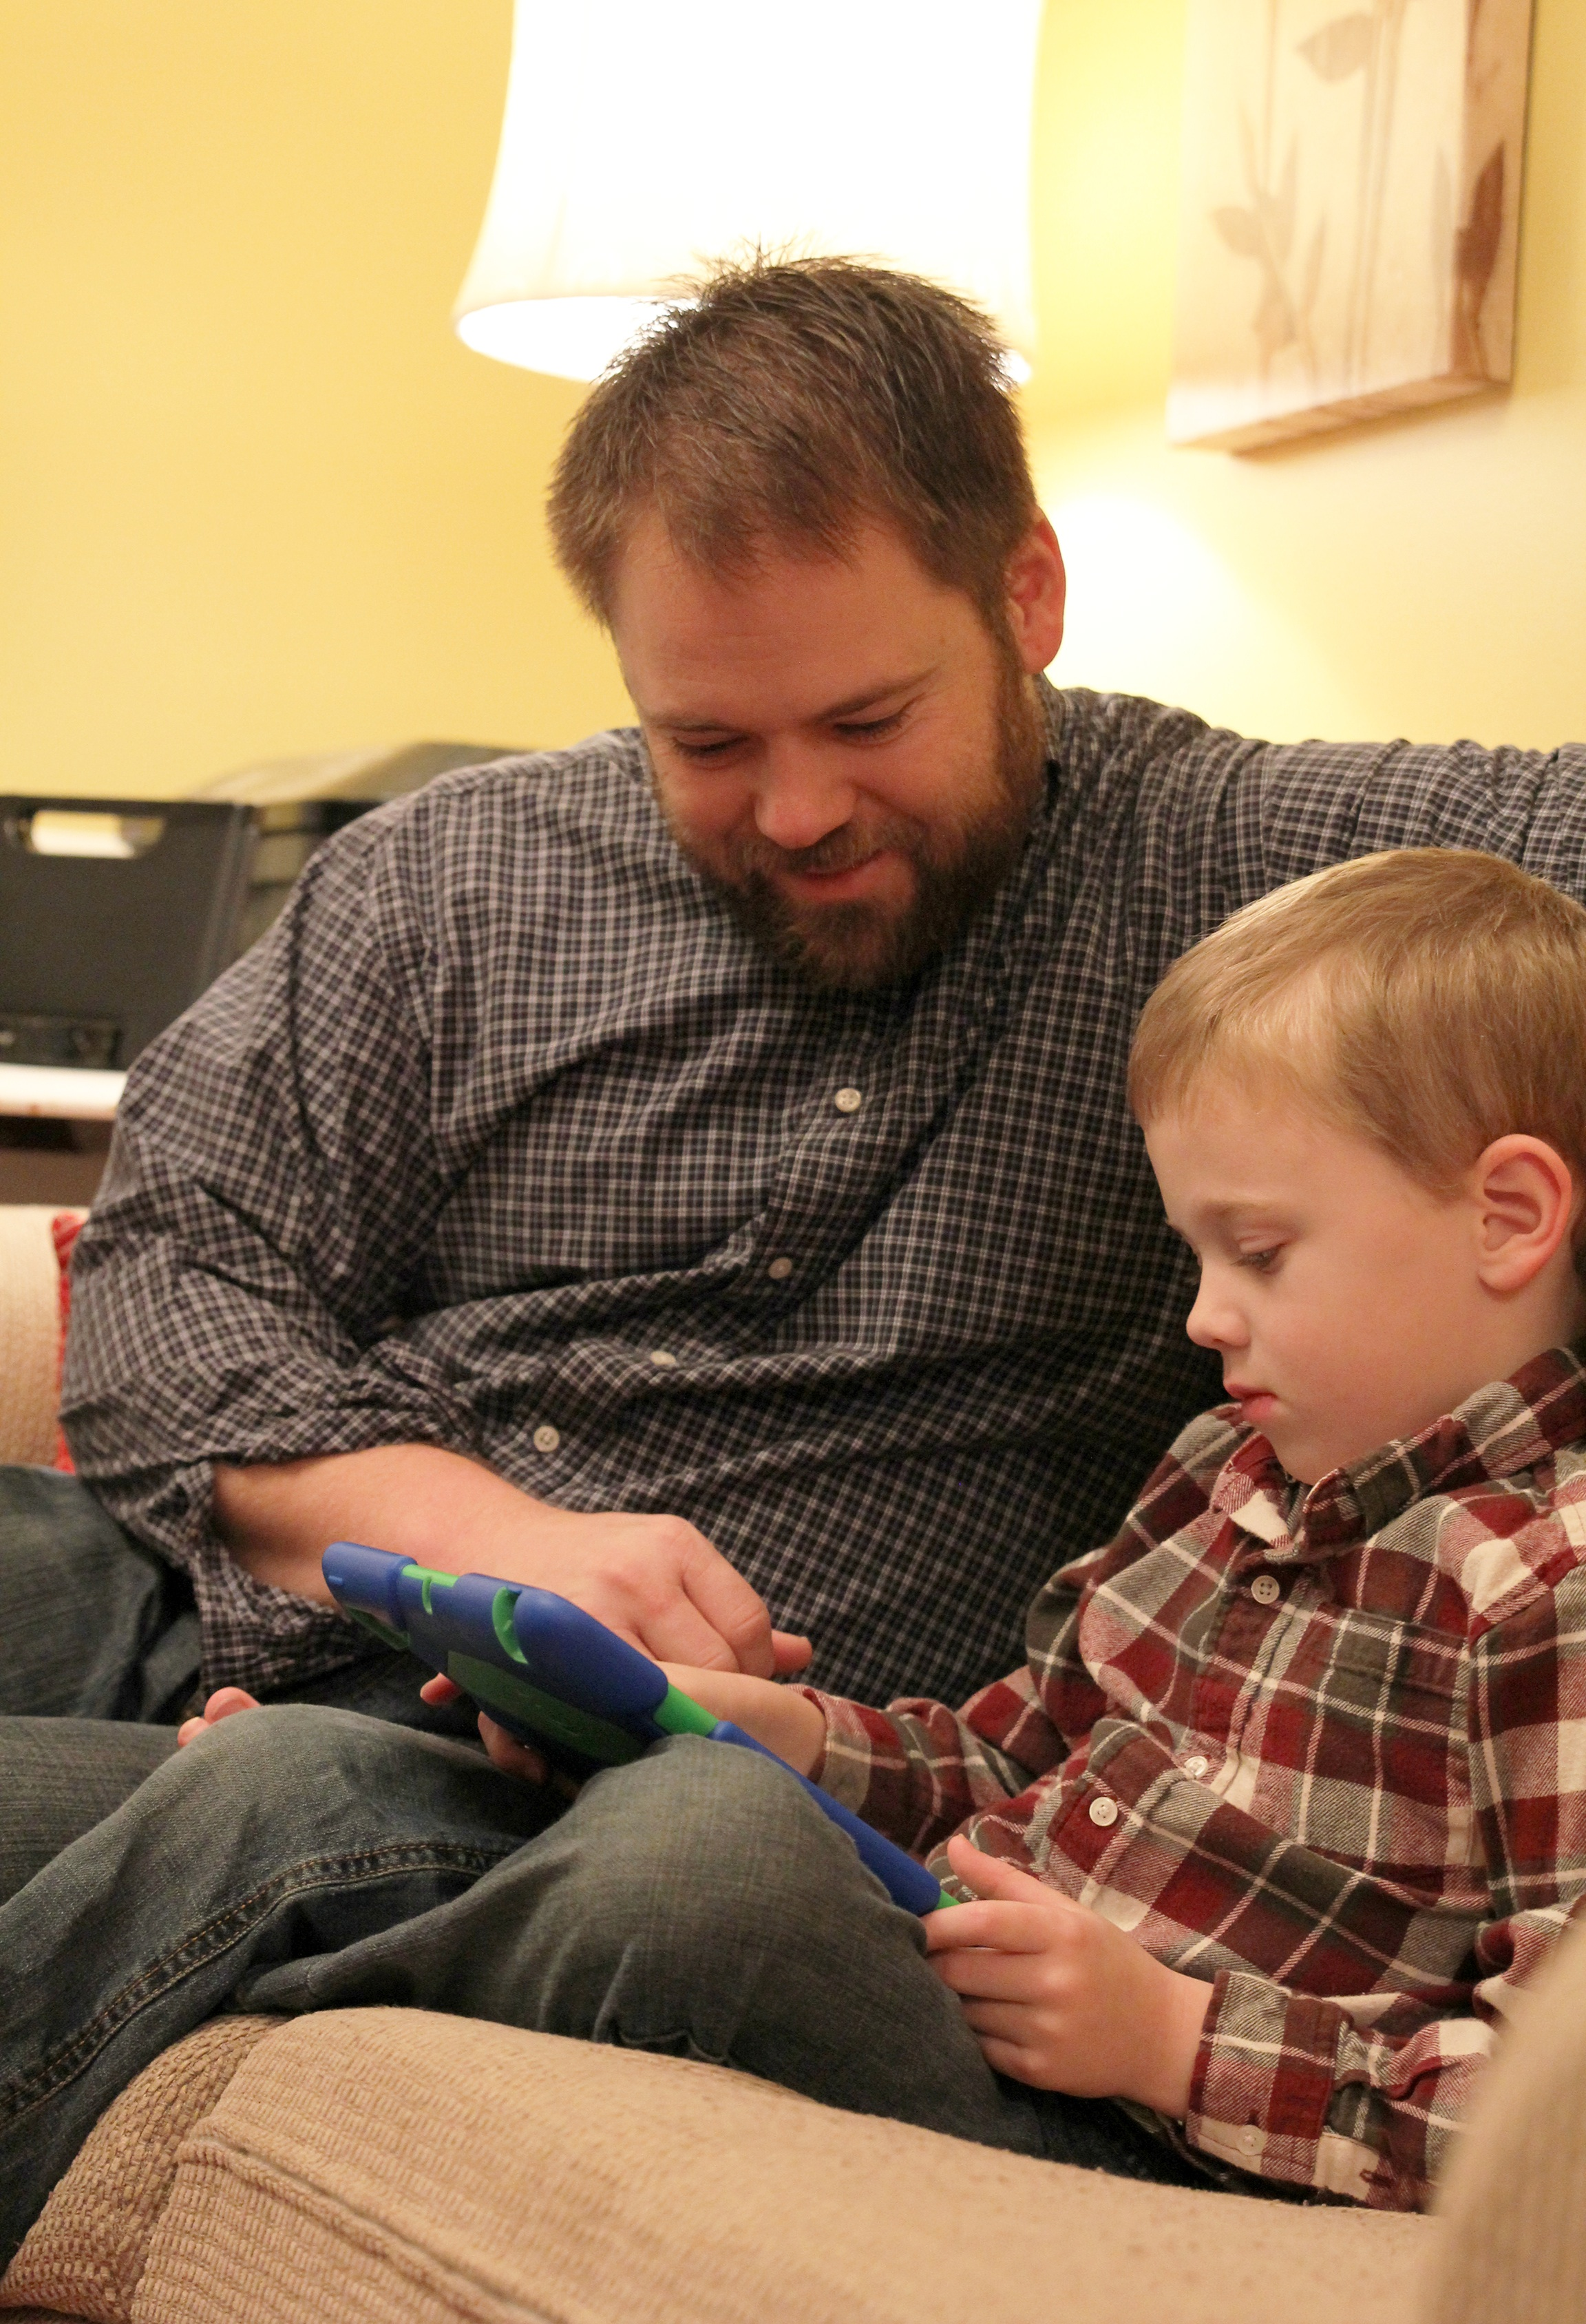 Children may try to maximize their access to technology when parents aren't around, and many babysitters show up to watch children armed with smart phones and tablets that are filled with kid-amusing apps. This works, as long as parents and babysitters discuss and agree on rules relating to technology before mom and dad leave the house, according to Diane Bales, a University of Georgia associate professor and UGA Cooperative Extension human development specialist.